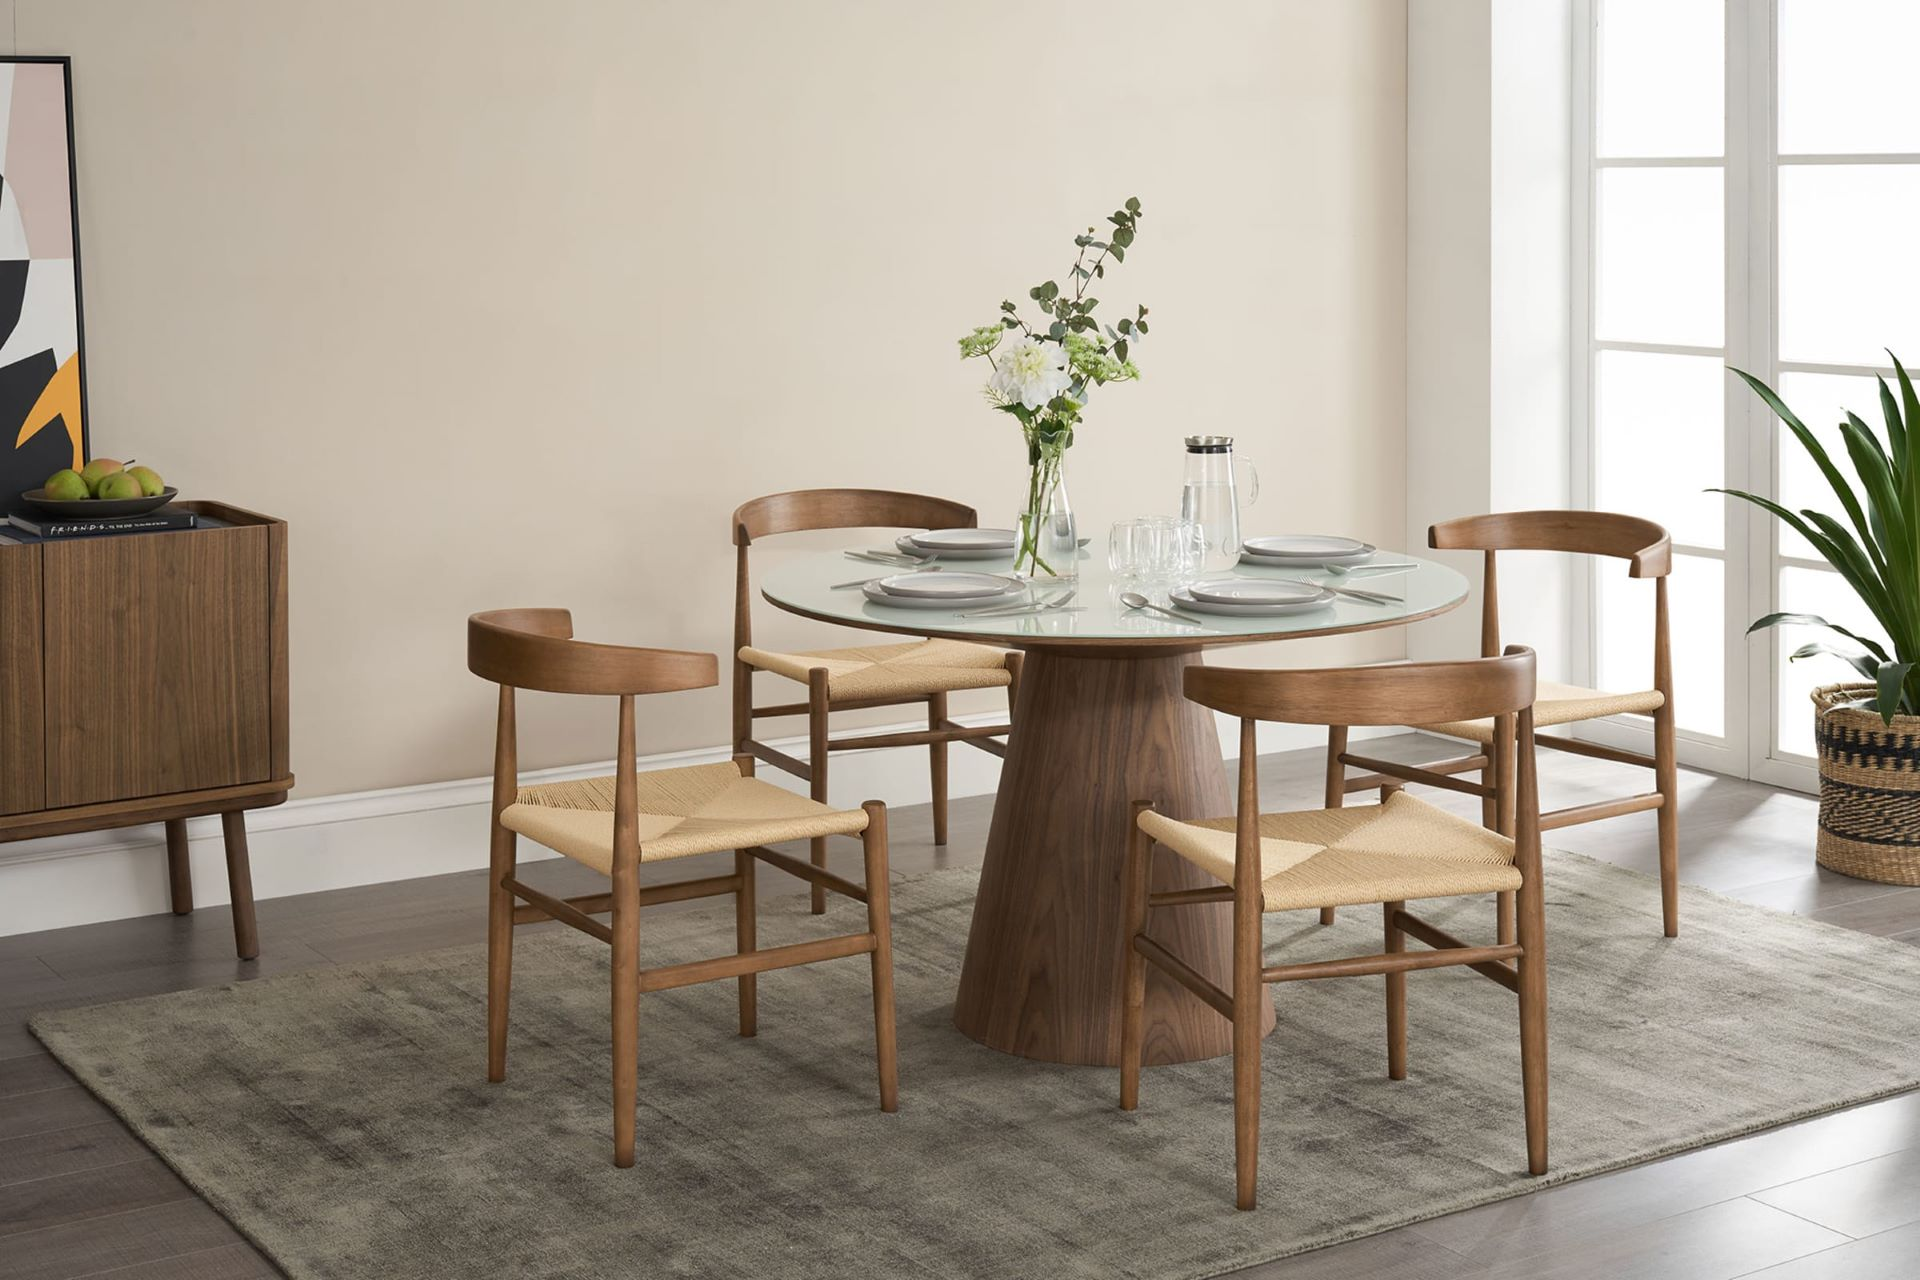 Warm wood accents furniture in Scandinavian style